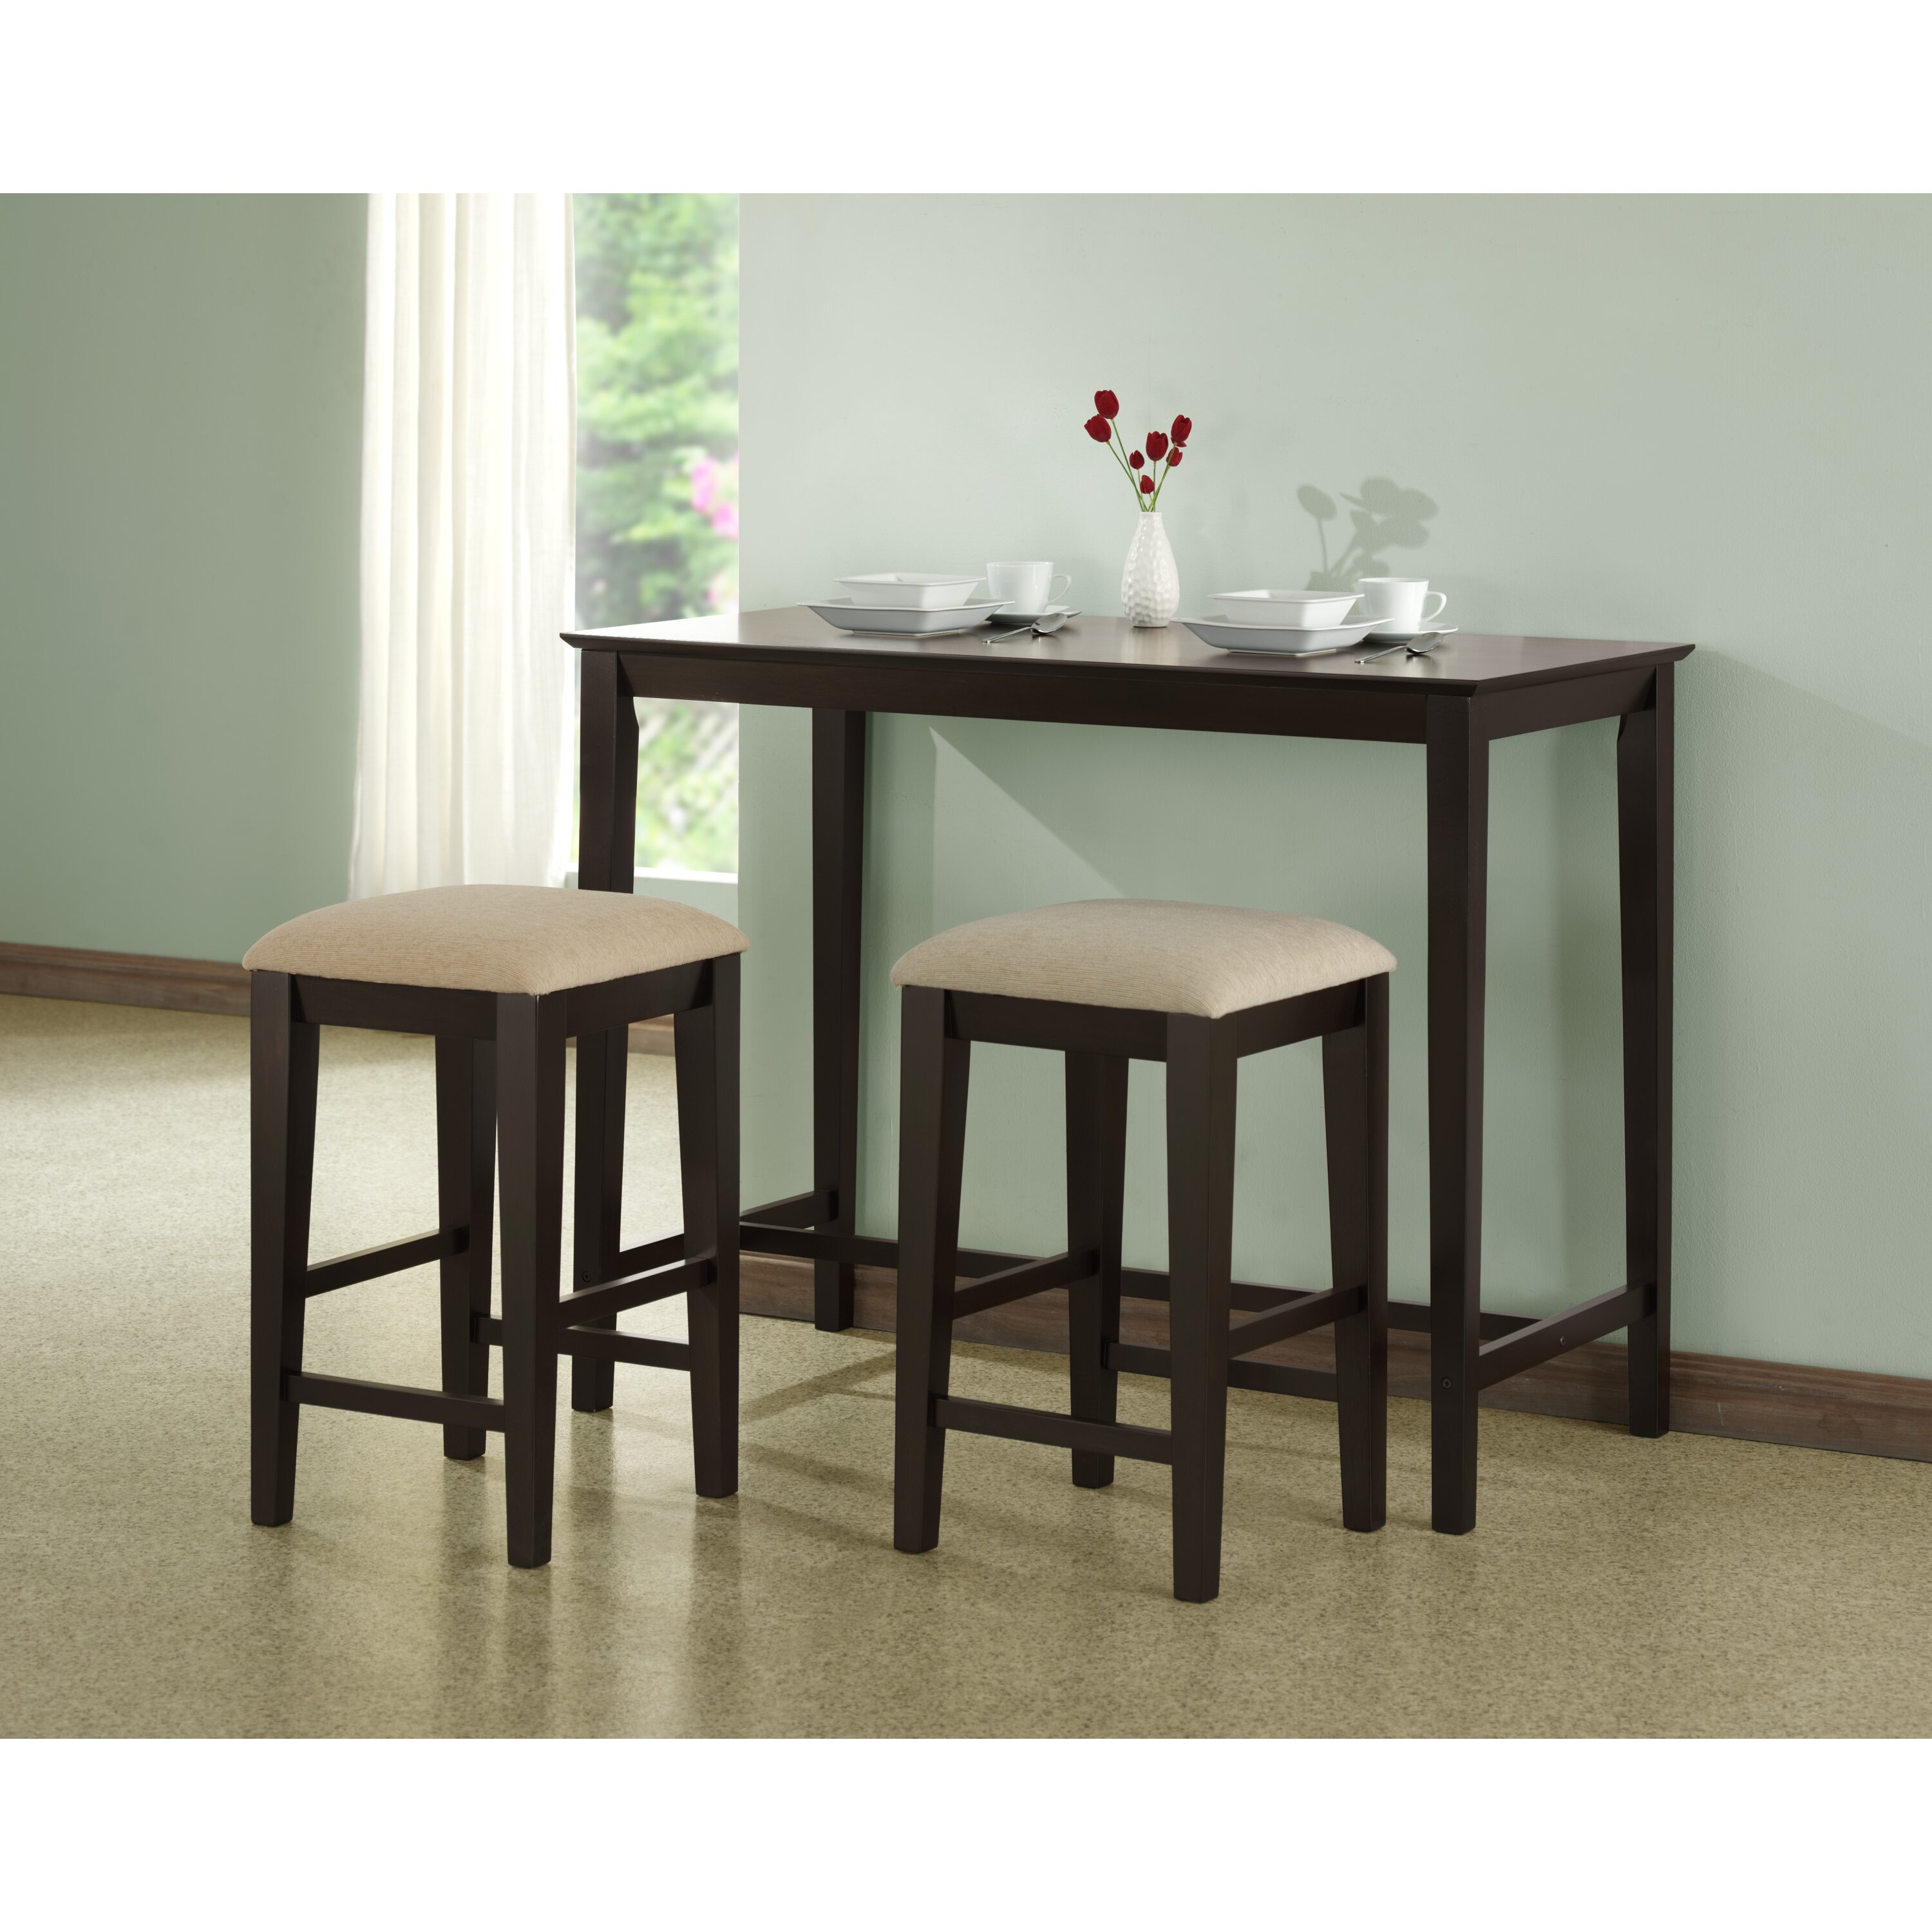 Monarch specialties inc counter height kitchen table for Kitchen tables for small areas